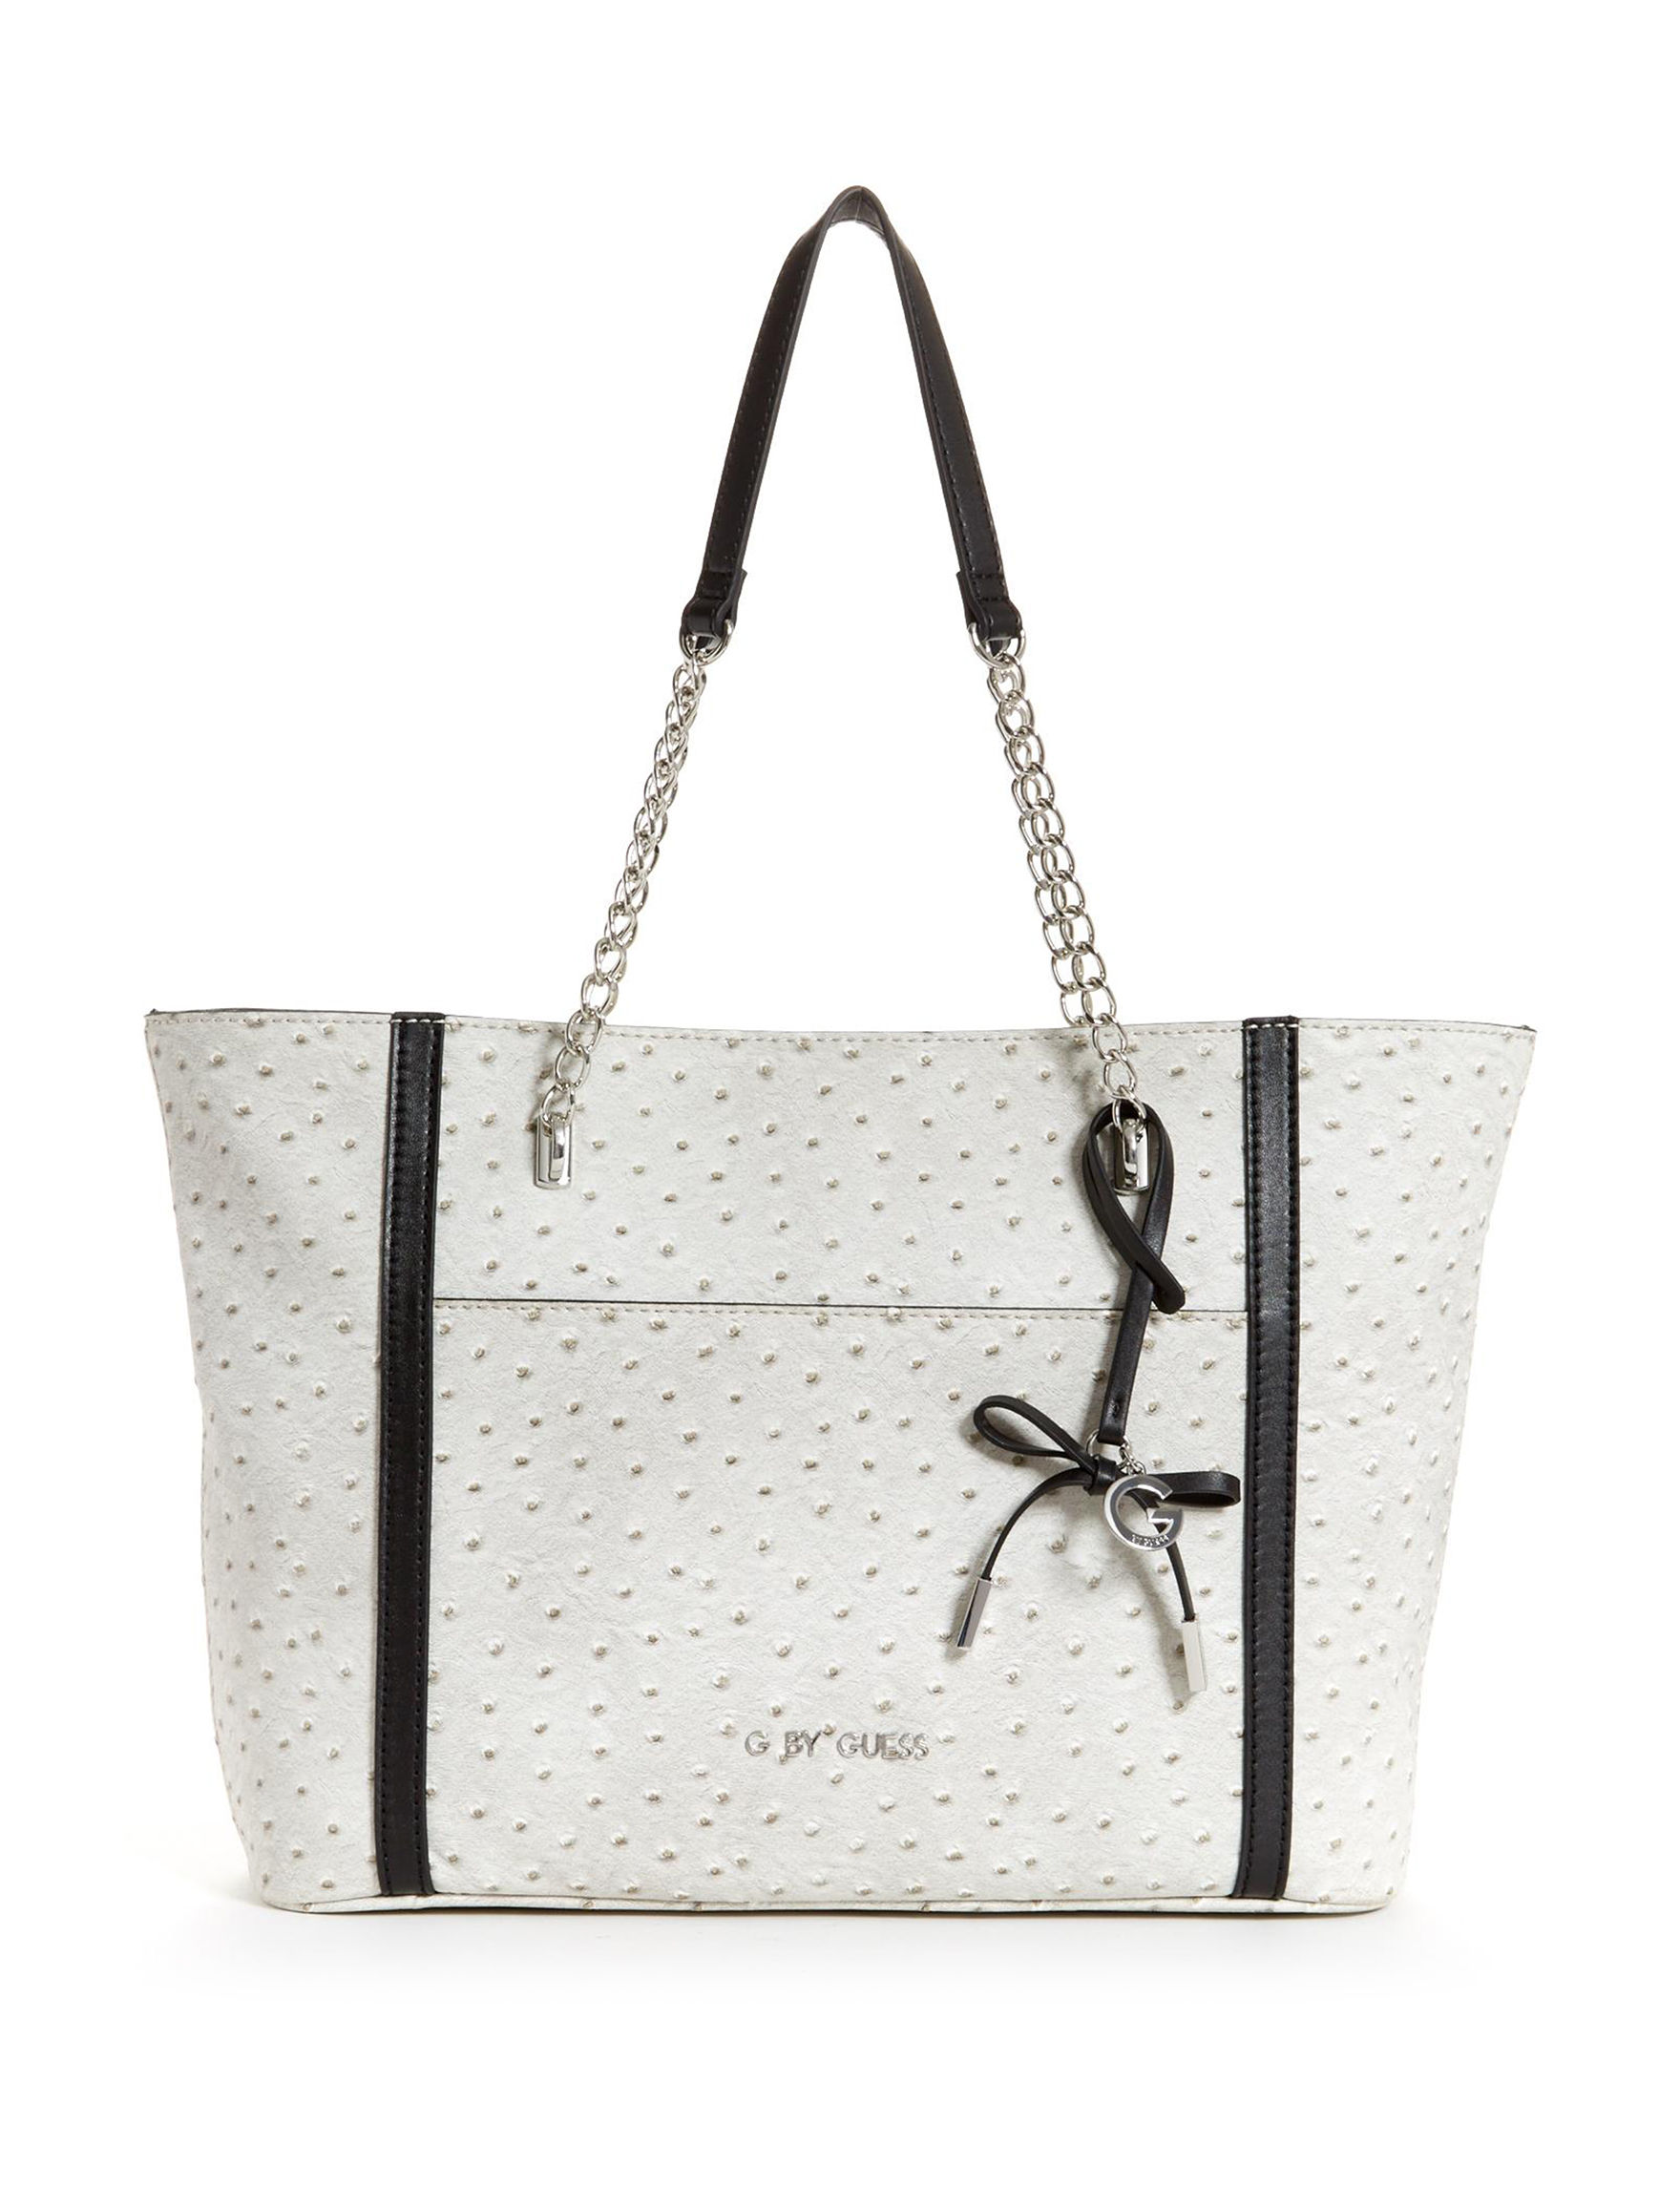 G by Guess Grey